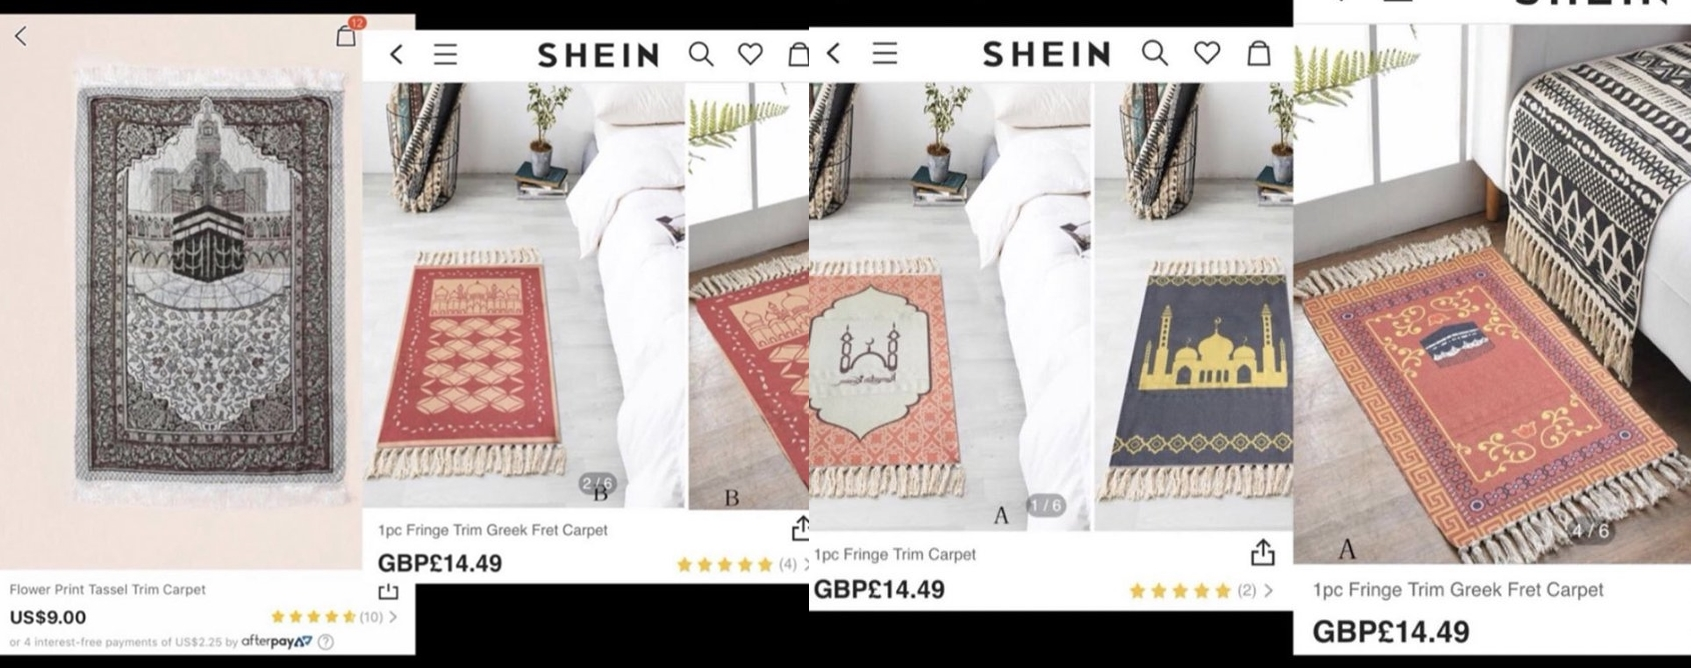 Chinese brand SHEIN under fire for selling prayer mats as casual carpets